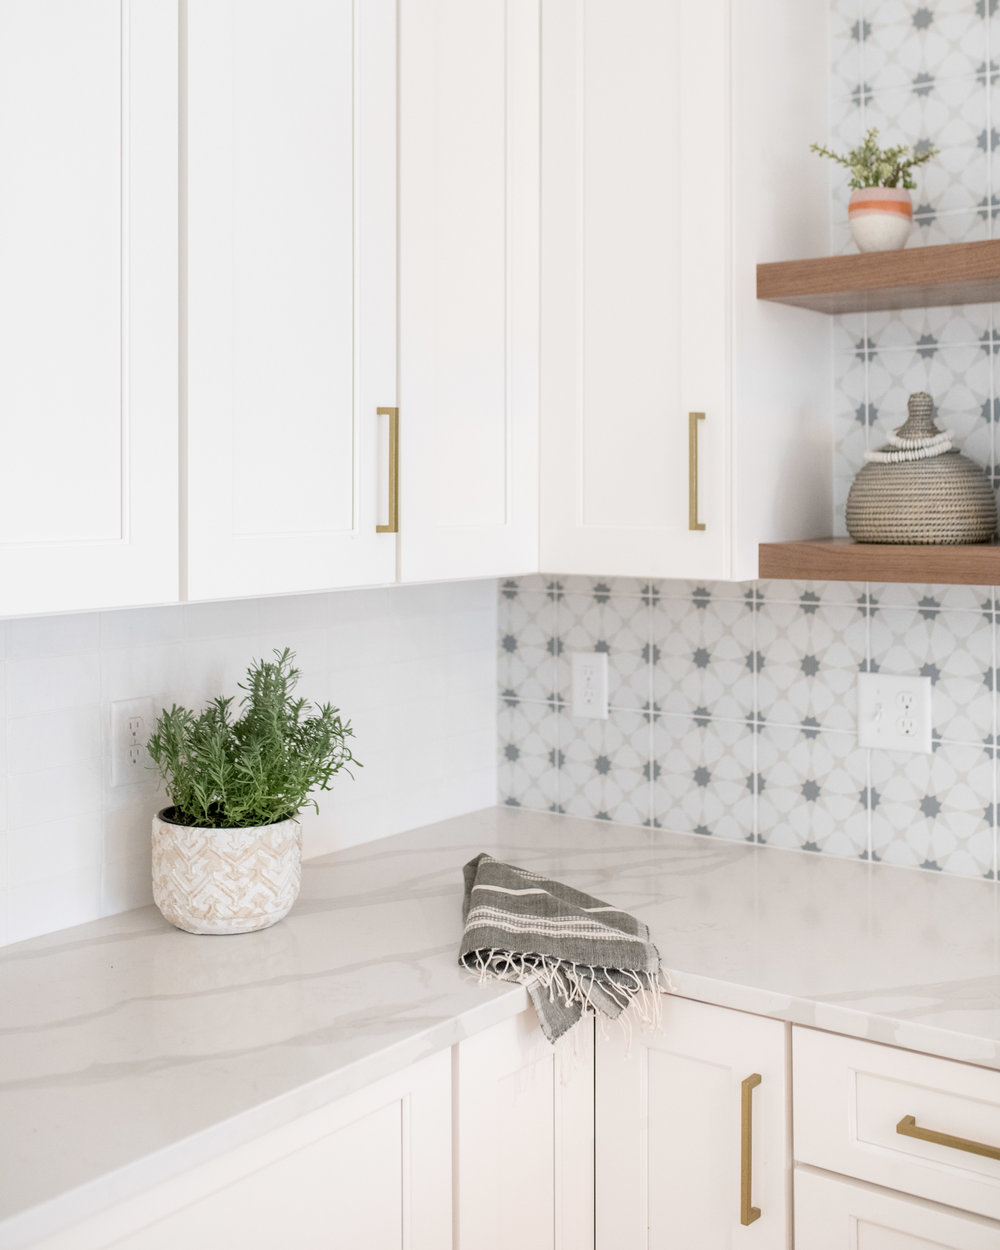 quartz countertops and graphic backsplash